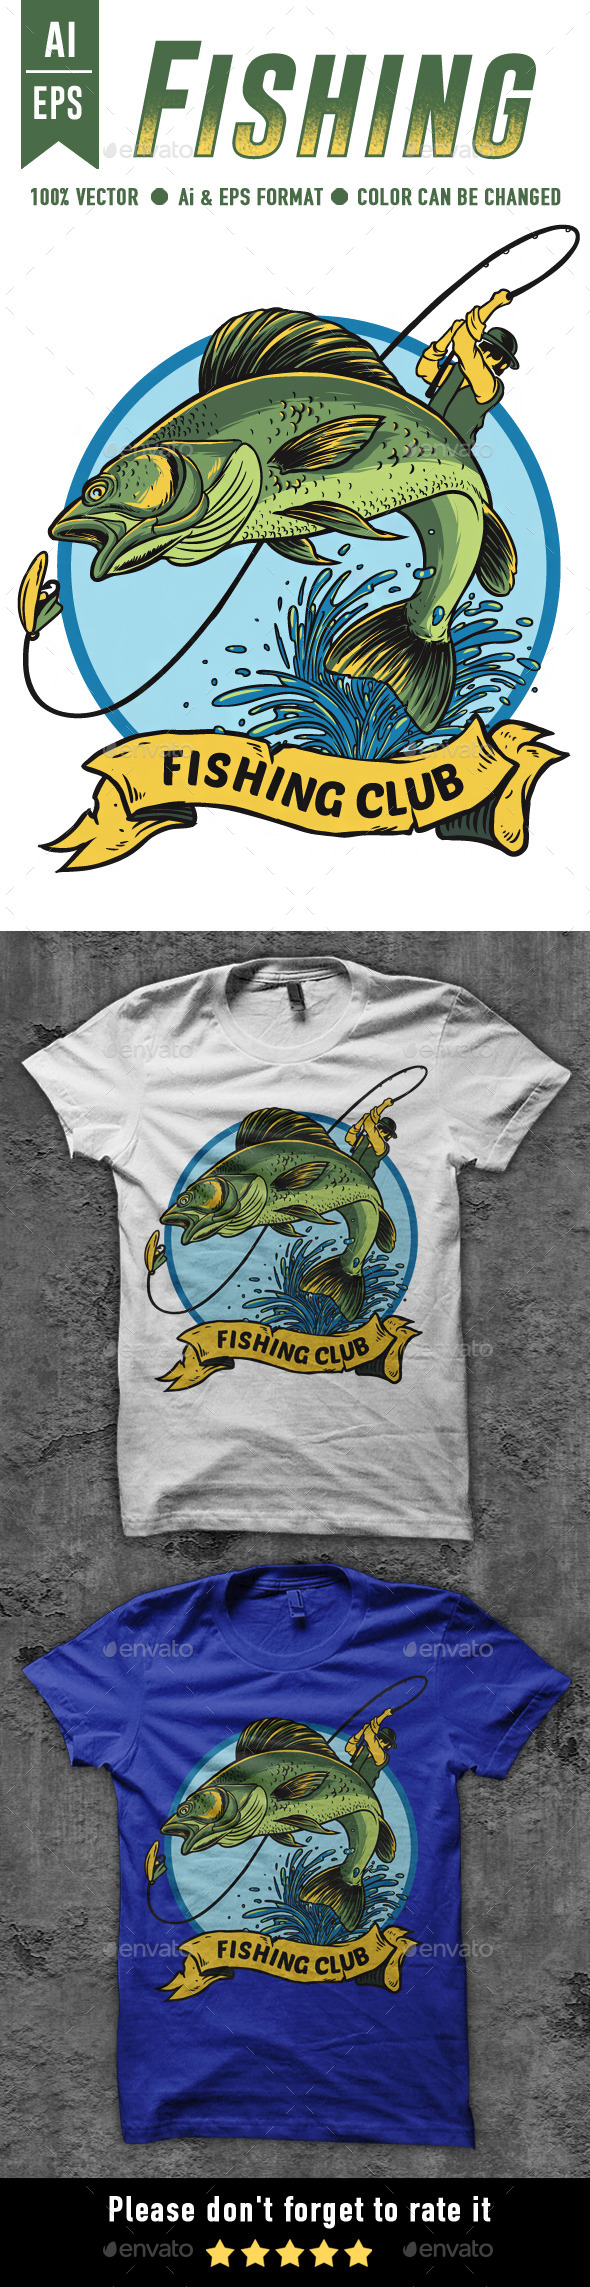 Fishing T-shirt Design - Sports & Teams T-Shirts